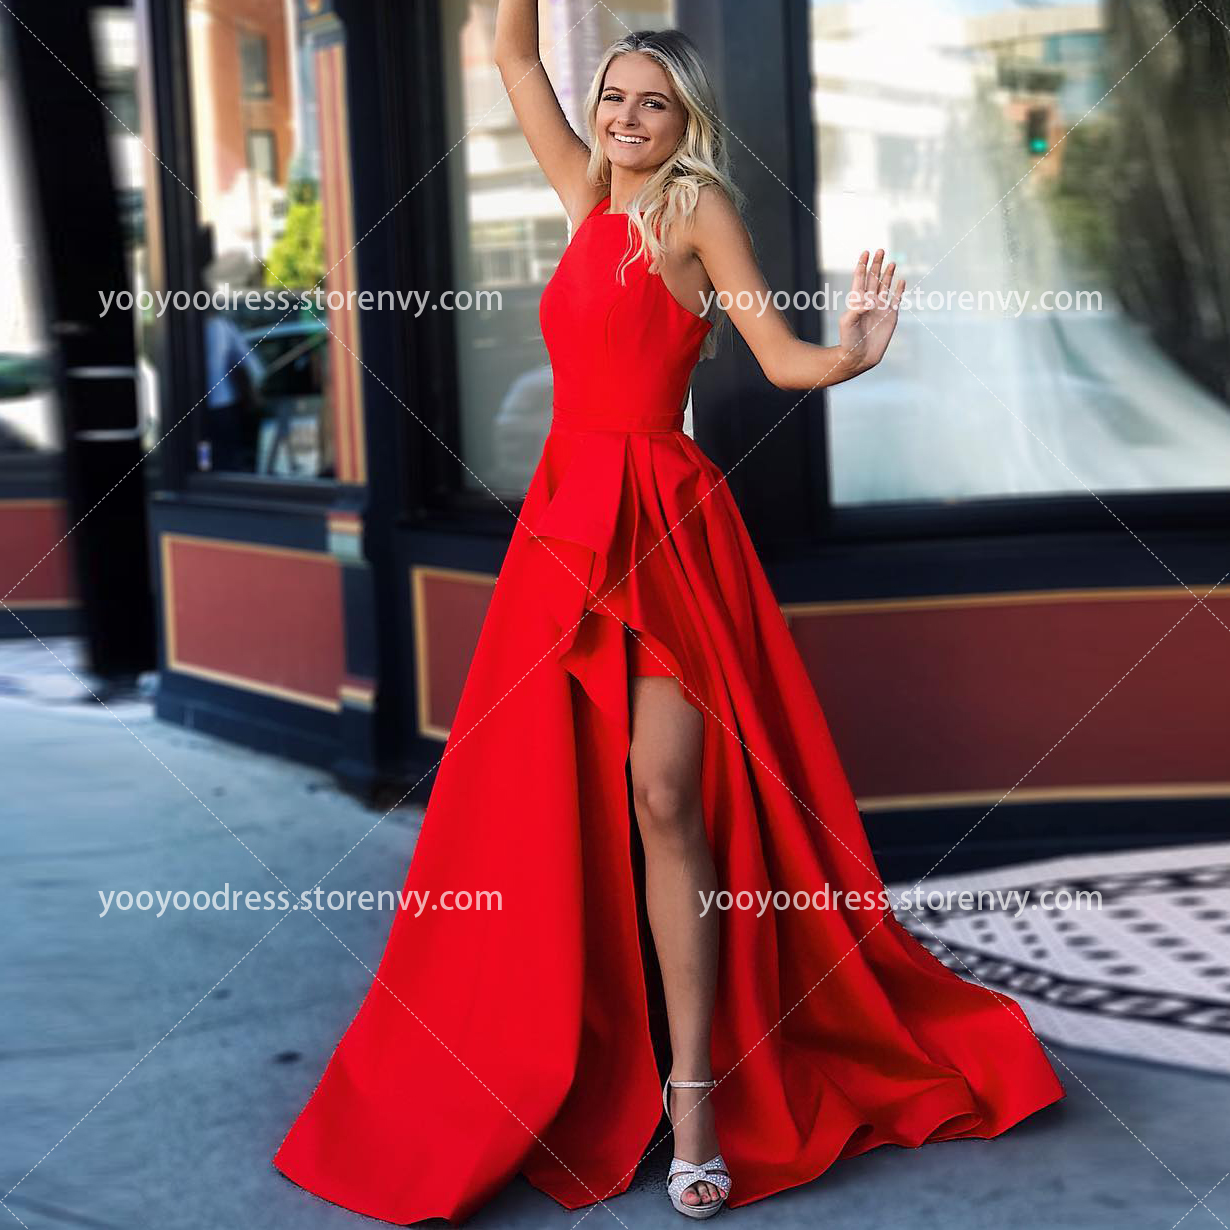 53a2085f0e Hot Sale Red Satin Prom Dress A-Line Round Neck Floor Length Sexy Backless  High Split Formal Evening Dresses Long Party Gown on Storenvy